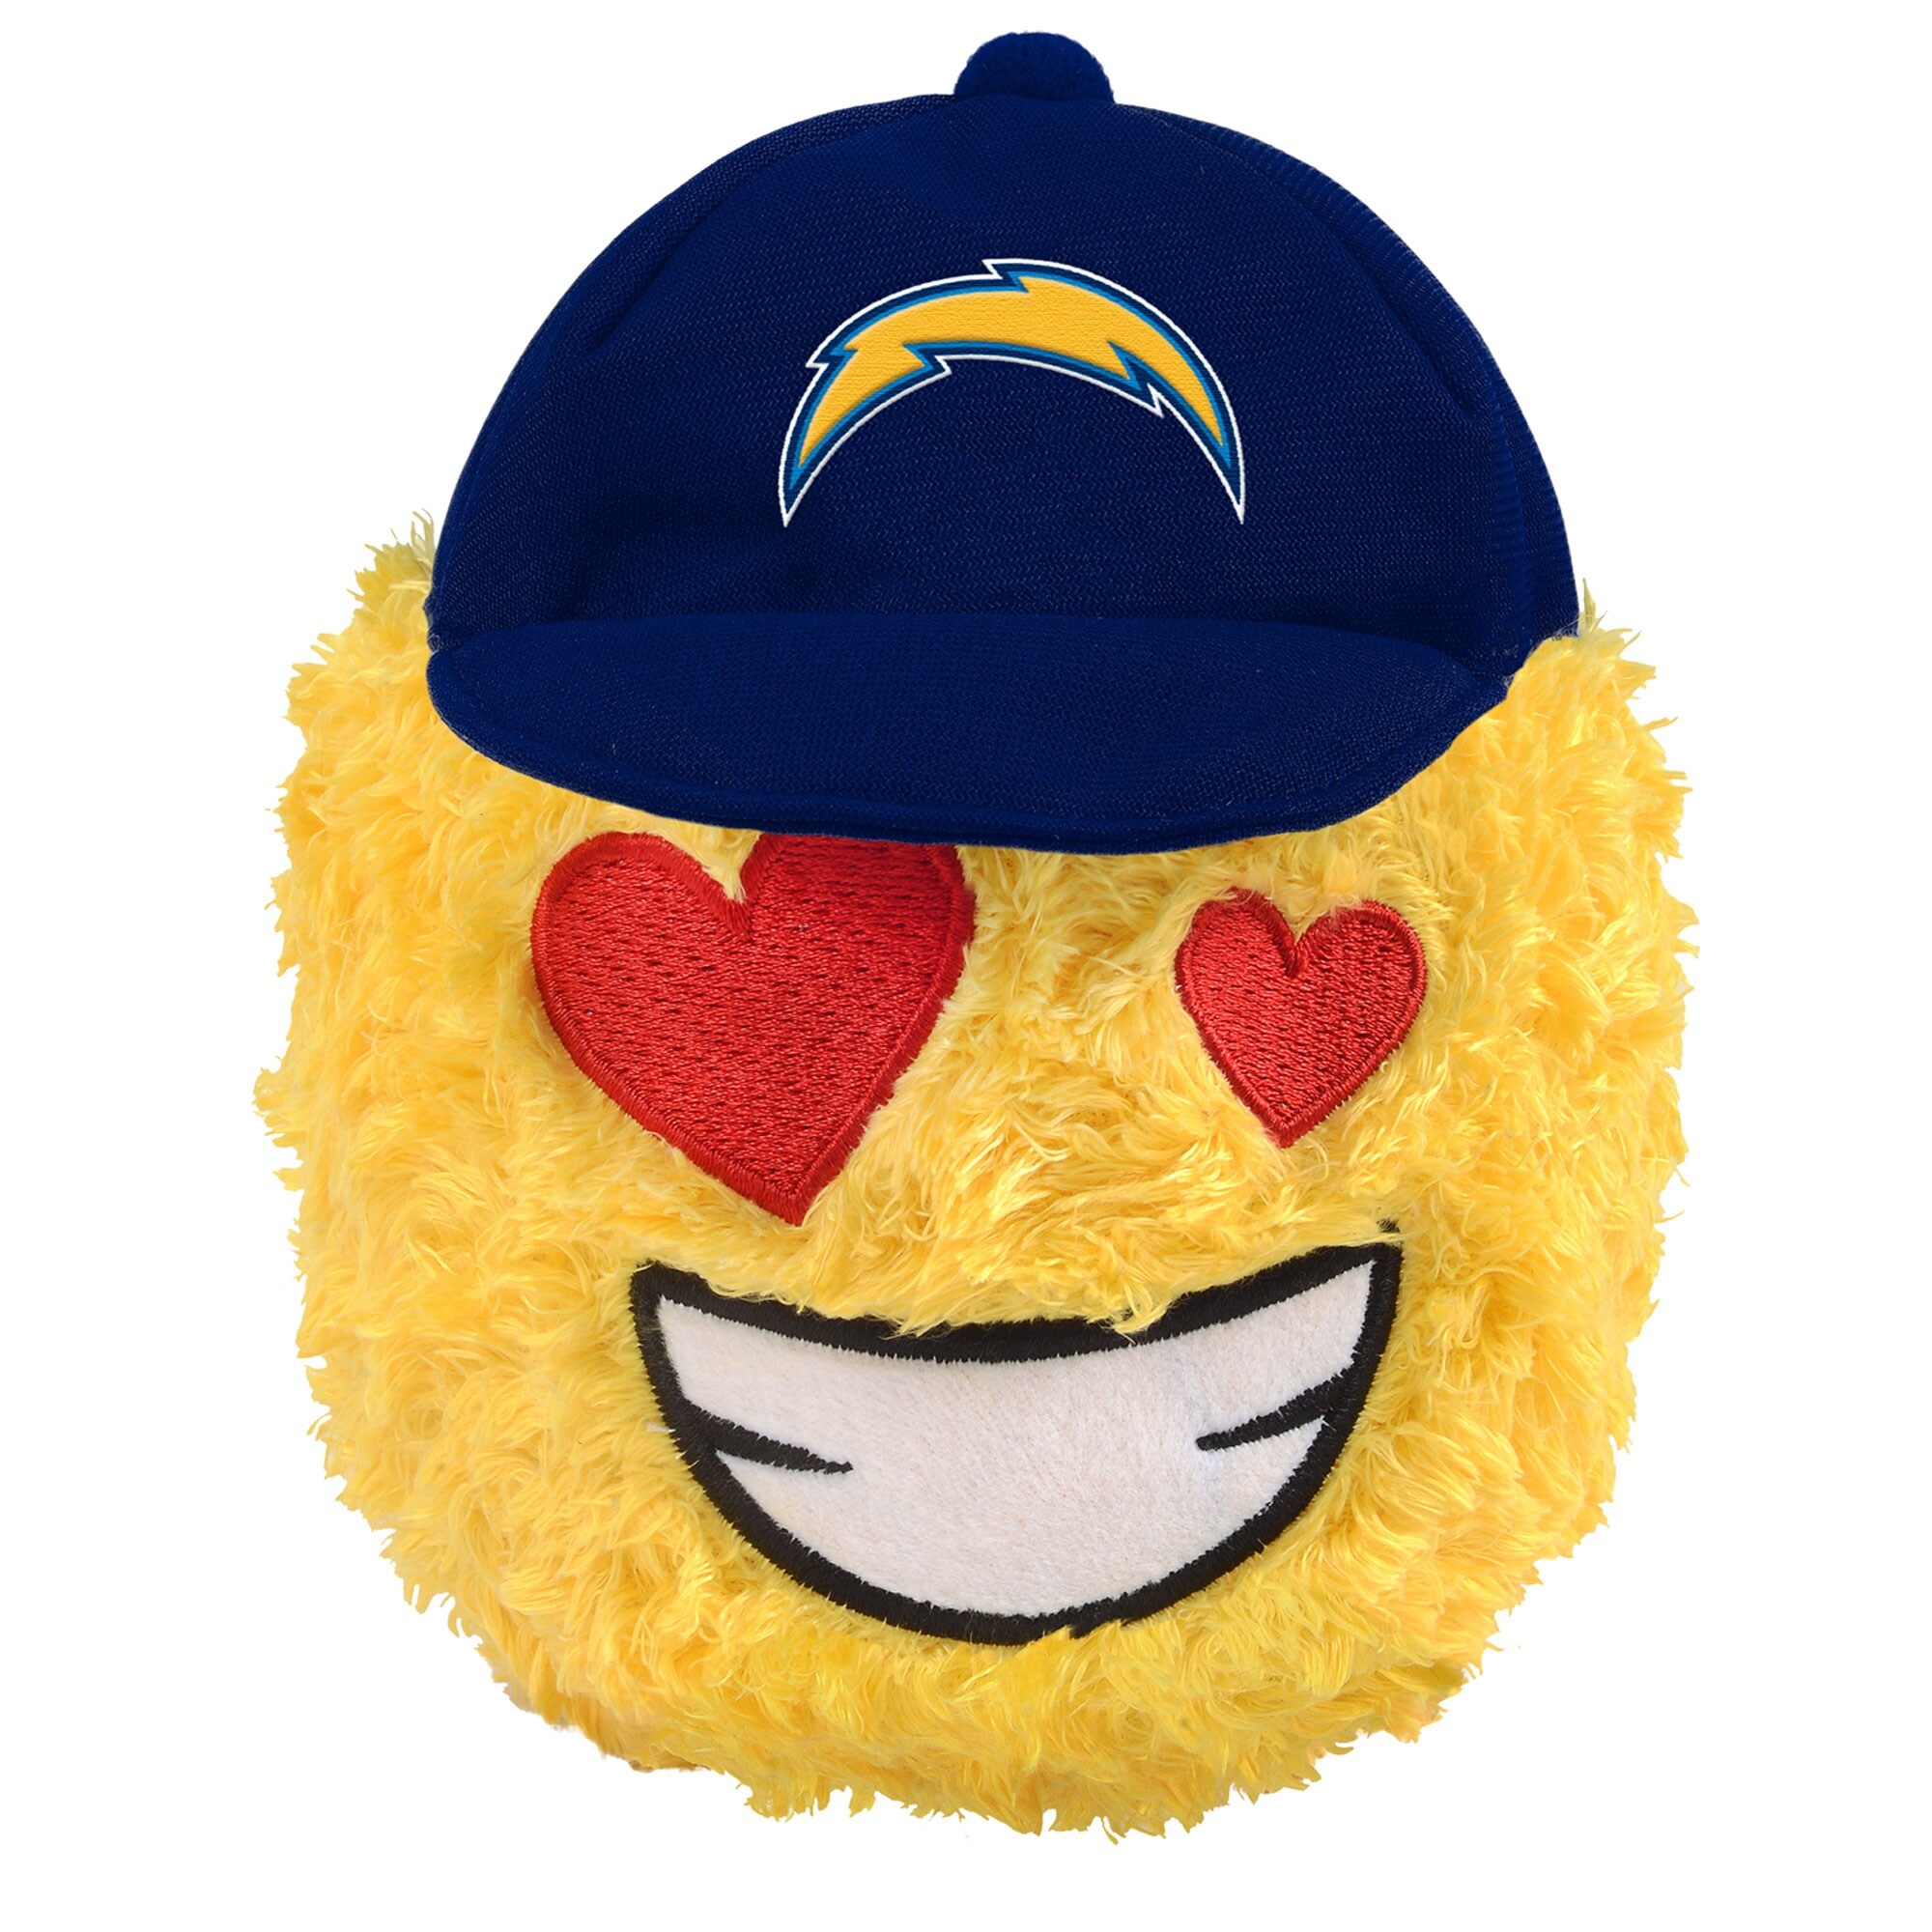 "Los Angeles Chargers 5"" Heart Eyes Teamoji Plush Toy"